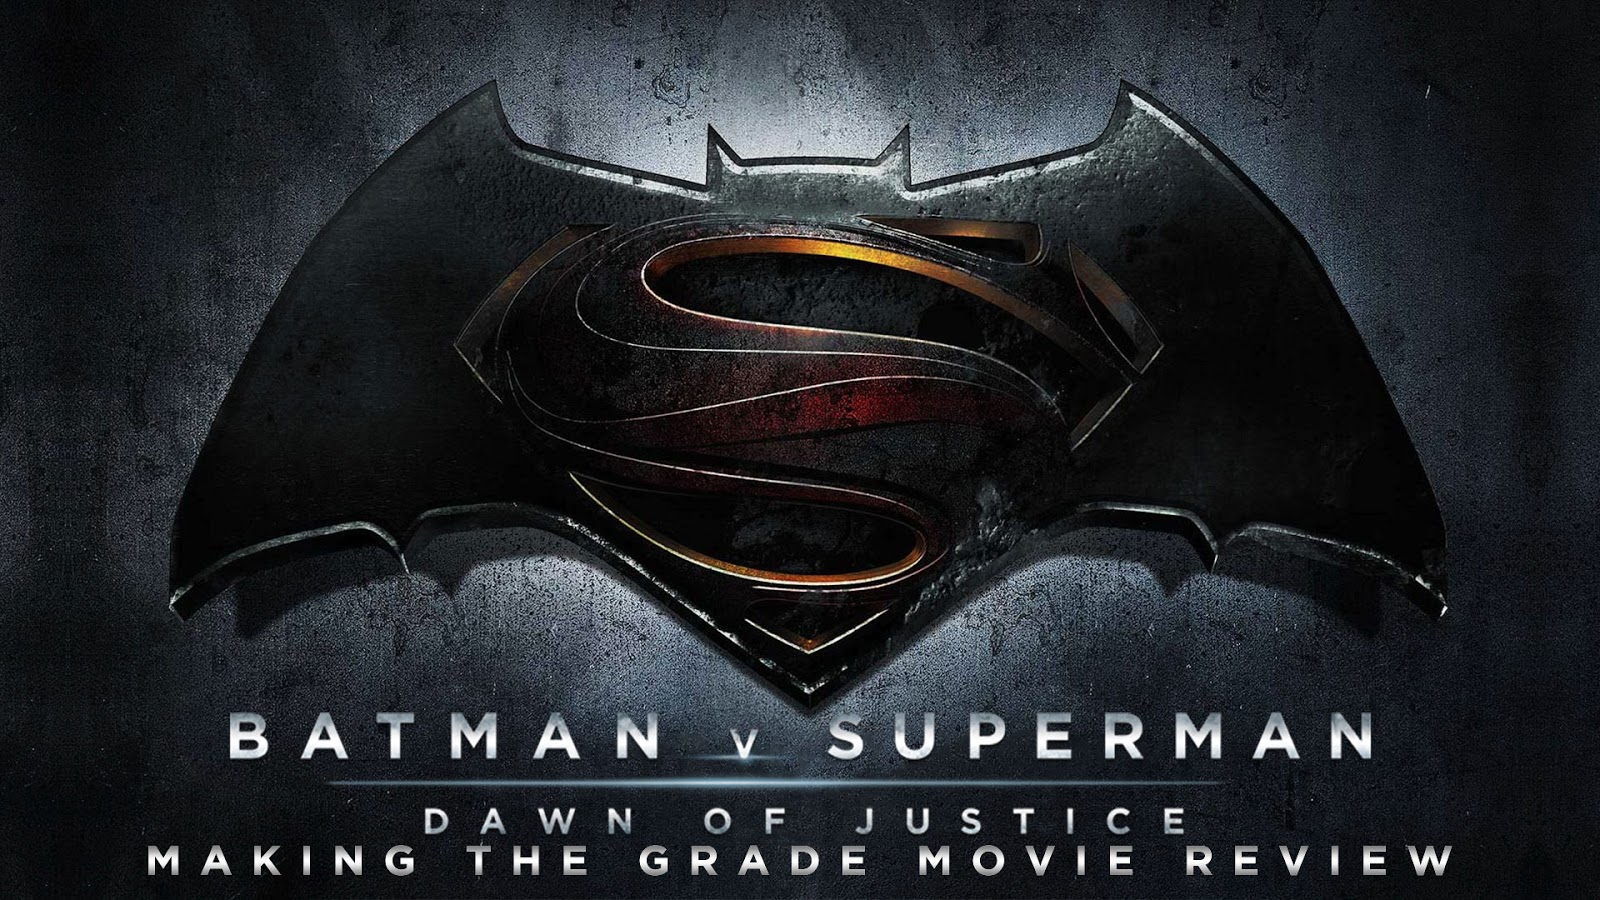 HD Batman v Superman: Dawn of Justice photos screen shots poster